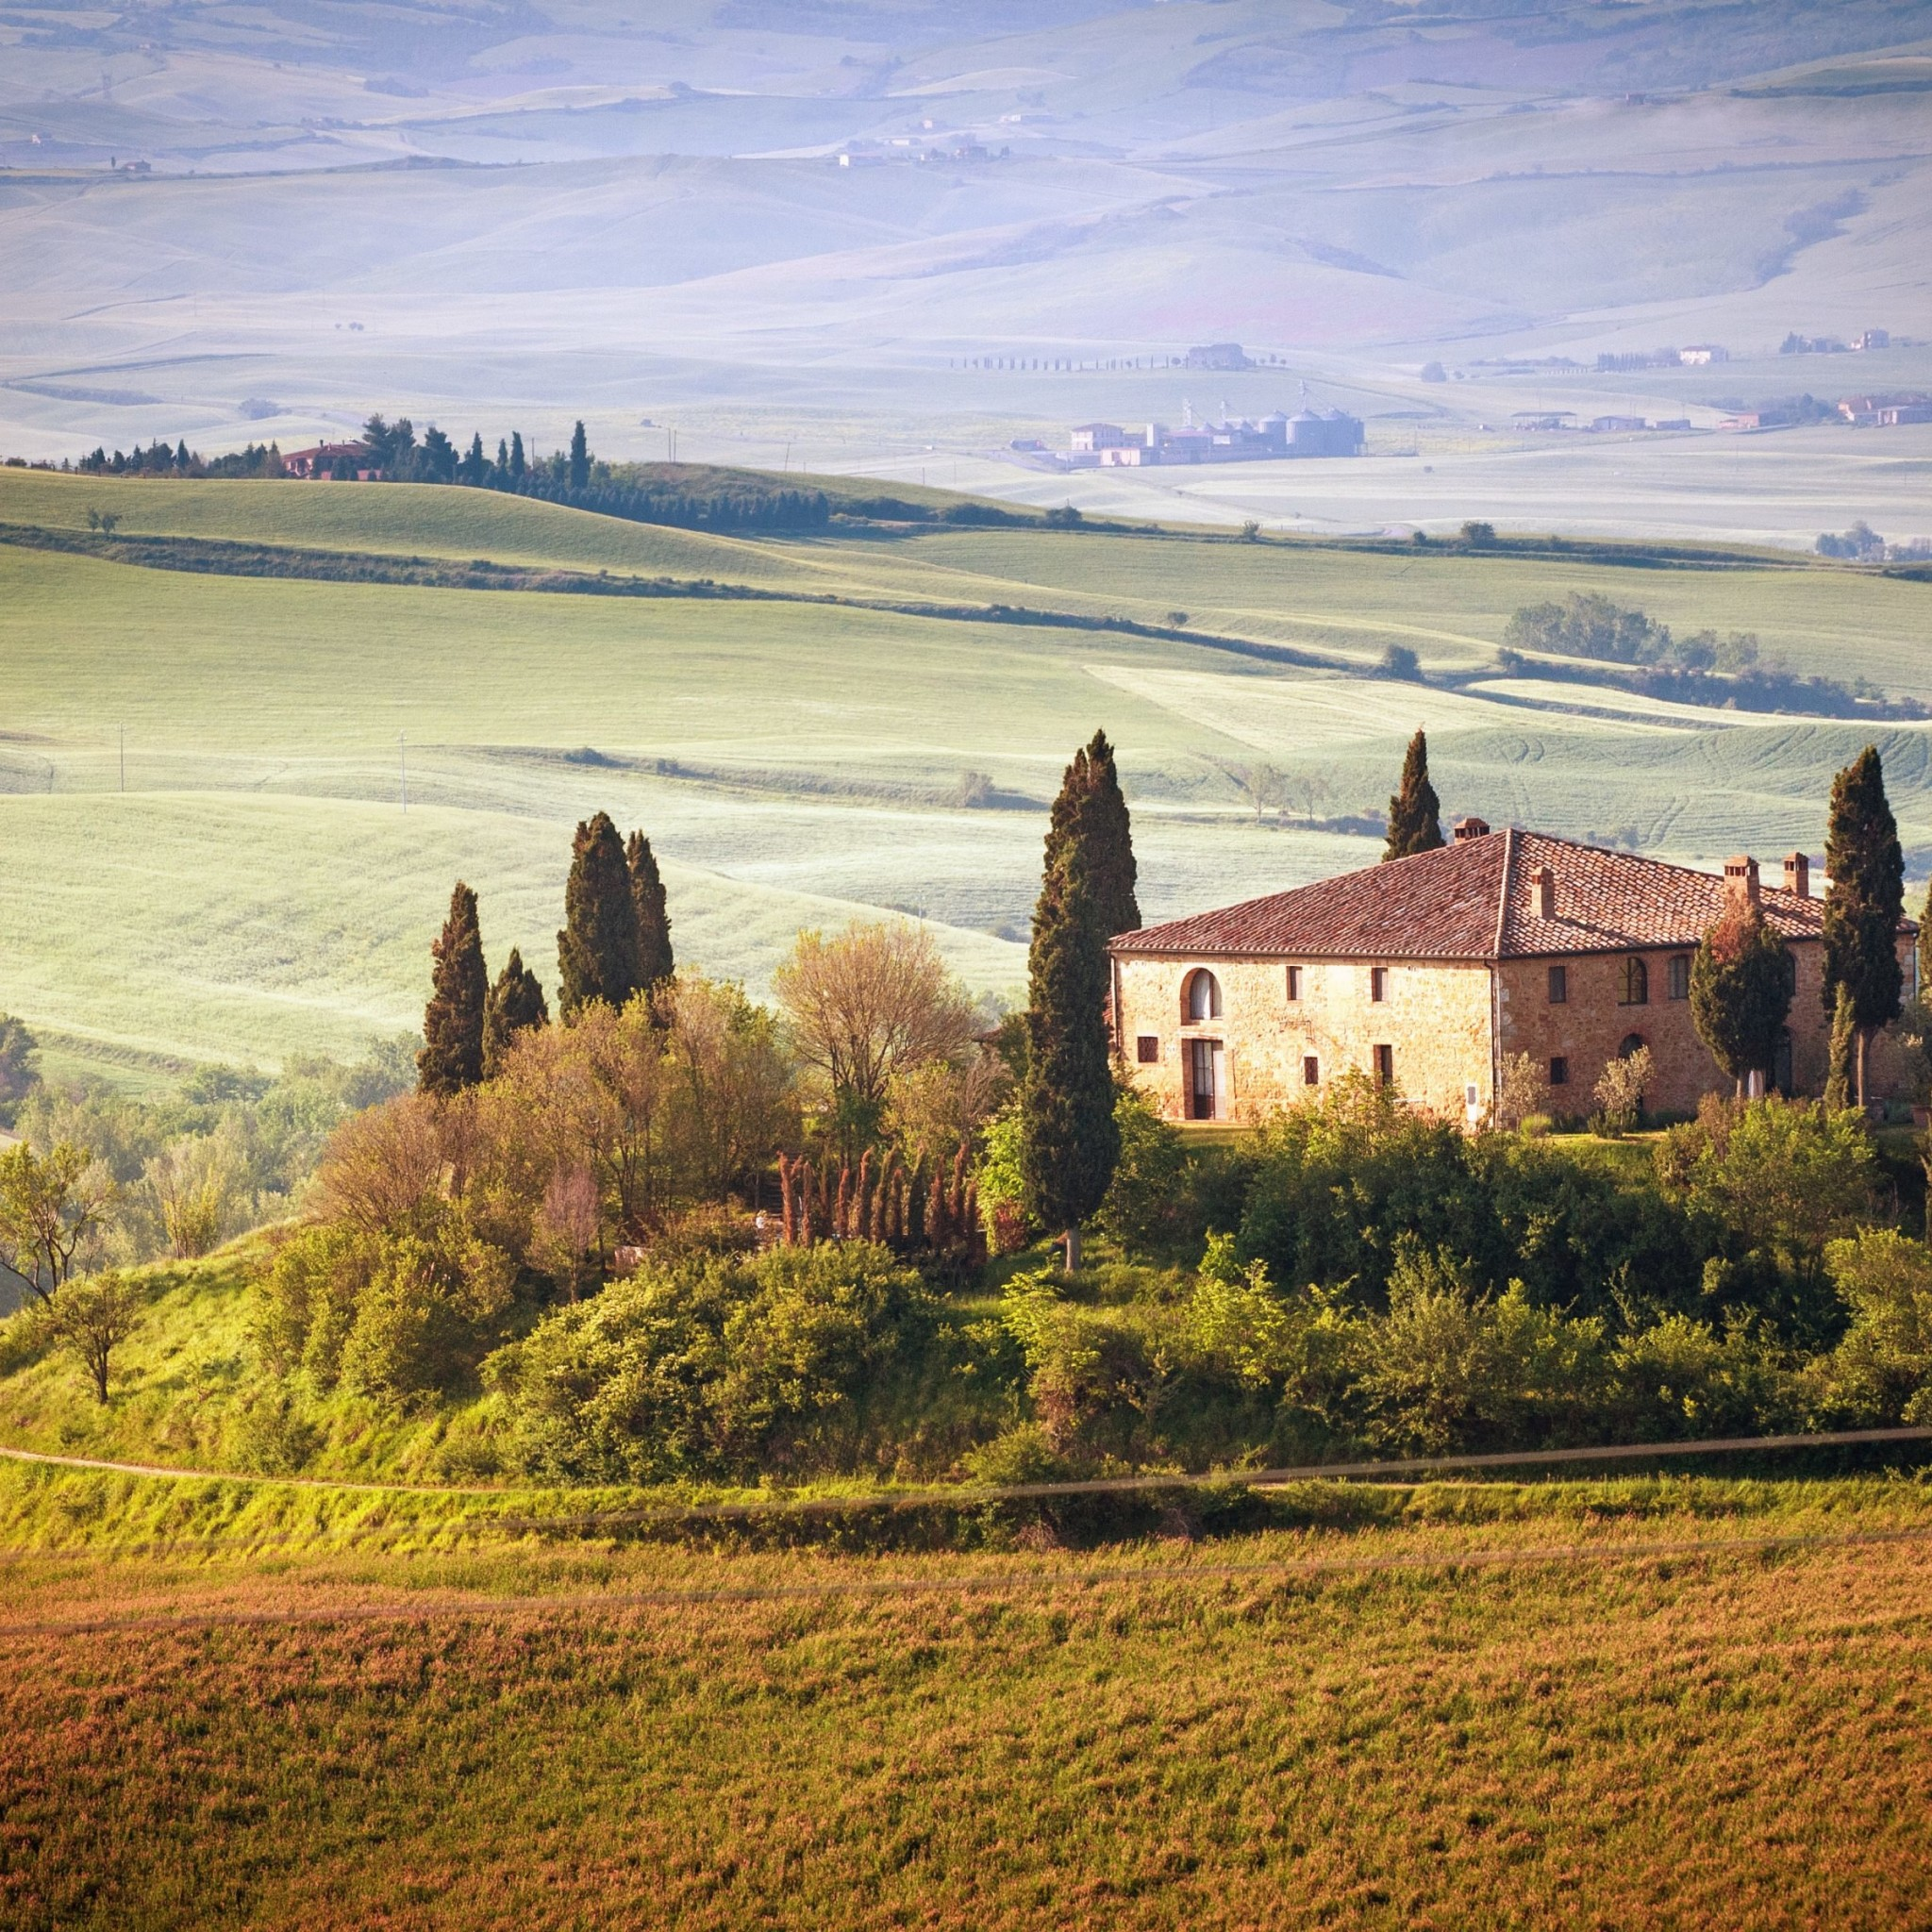 Summer in Tuscany, Italy Wallpaper for Google Nexus 9